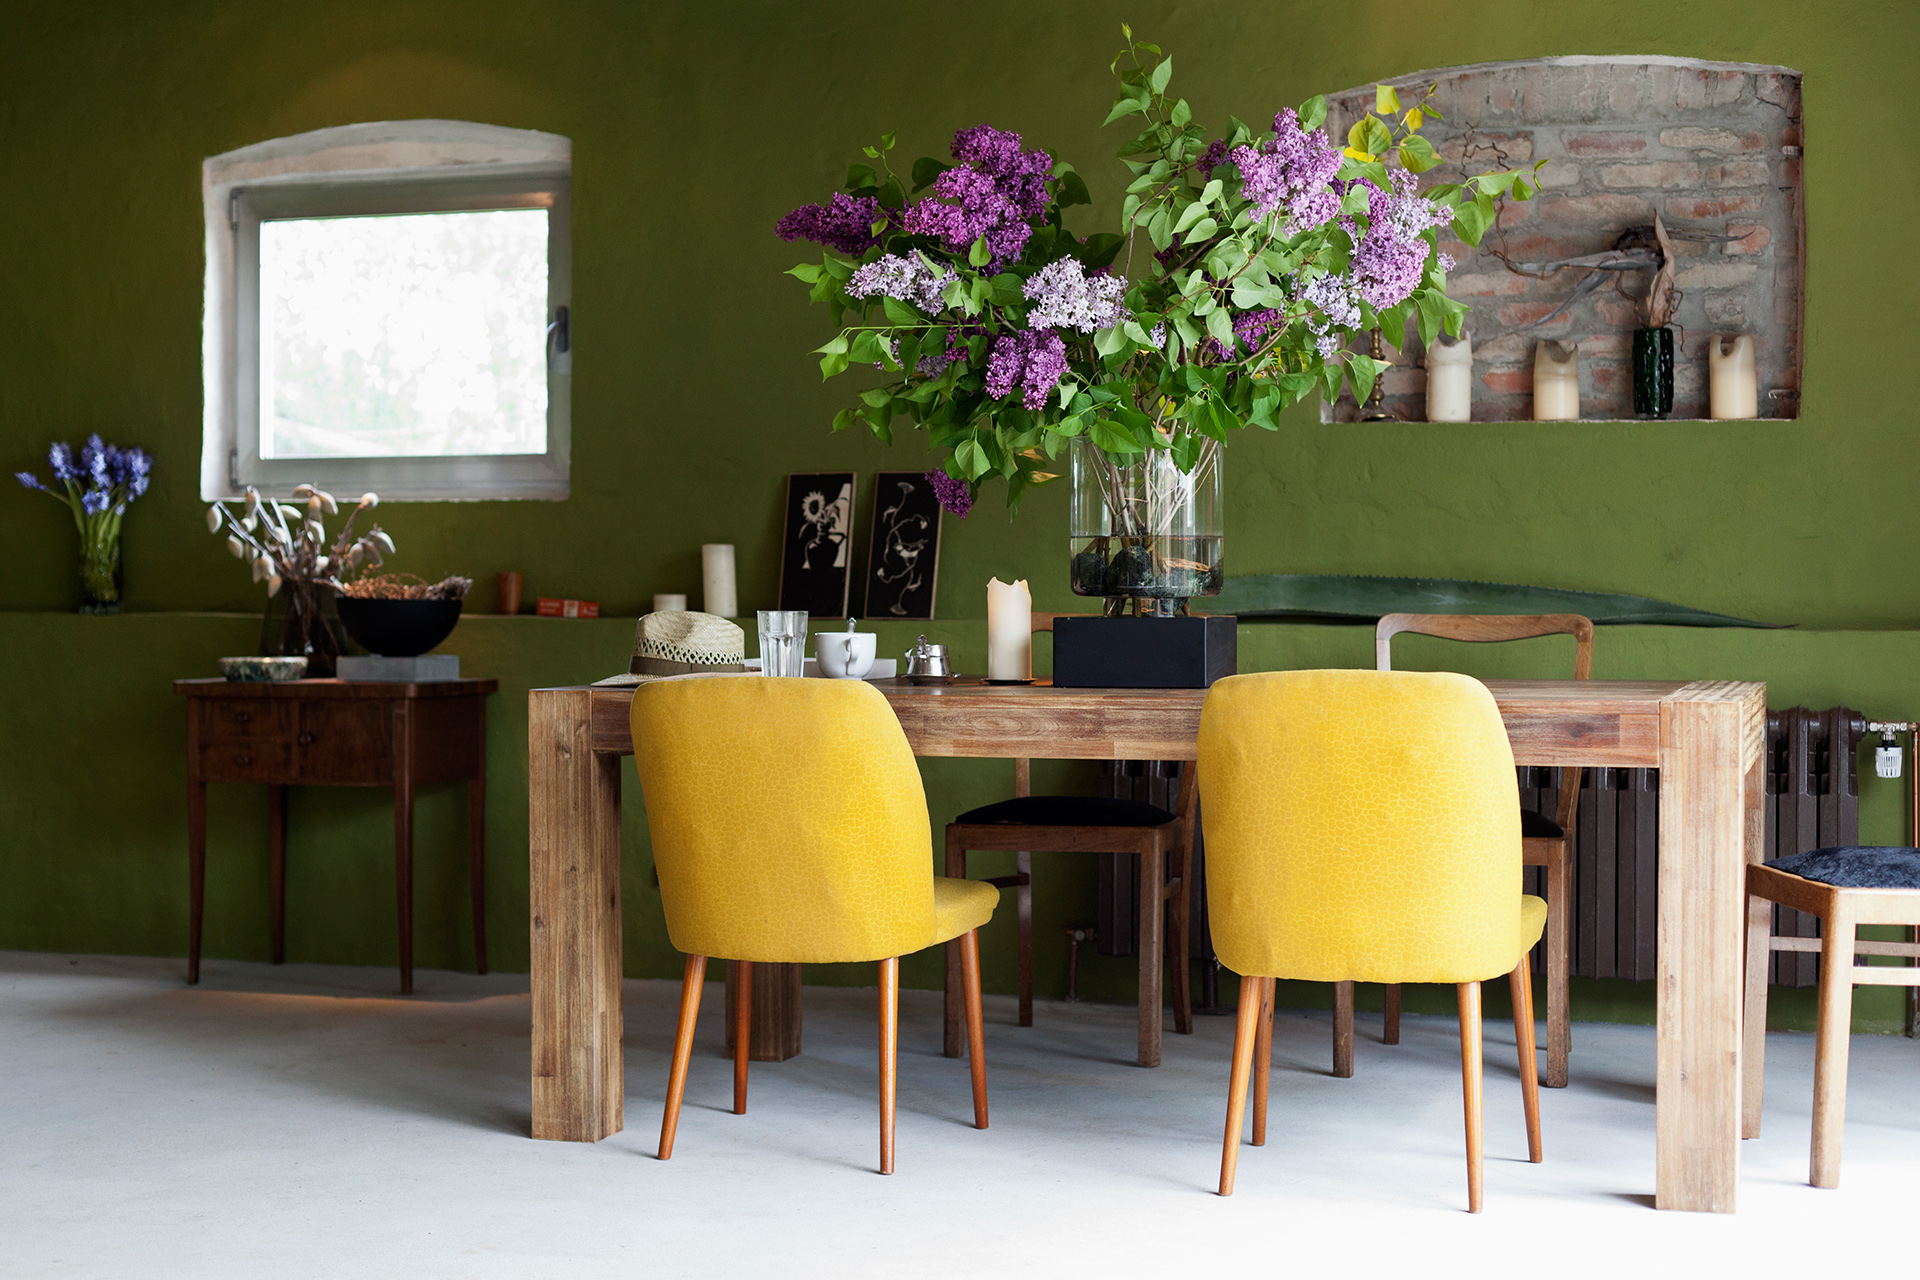 A stylish colorful dining room with yellow chairs and lilacs